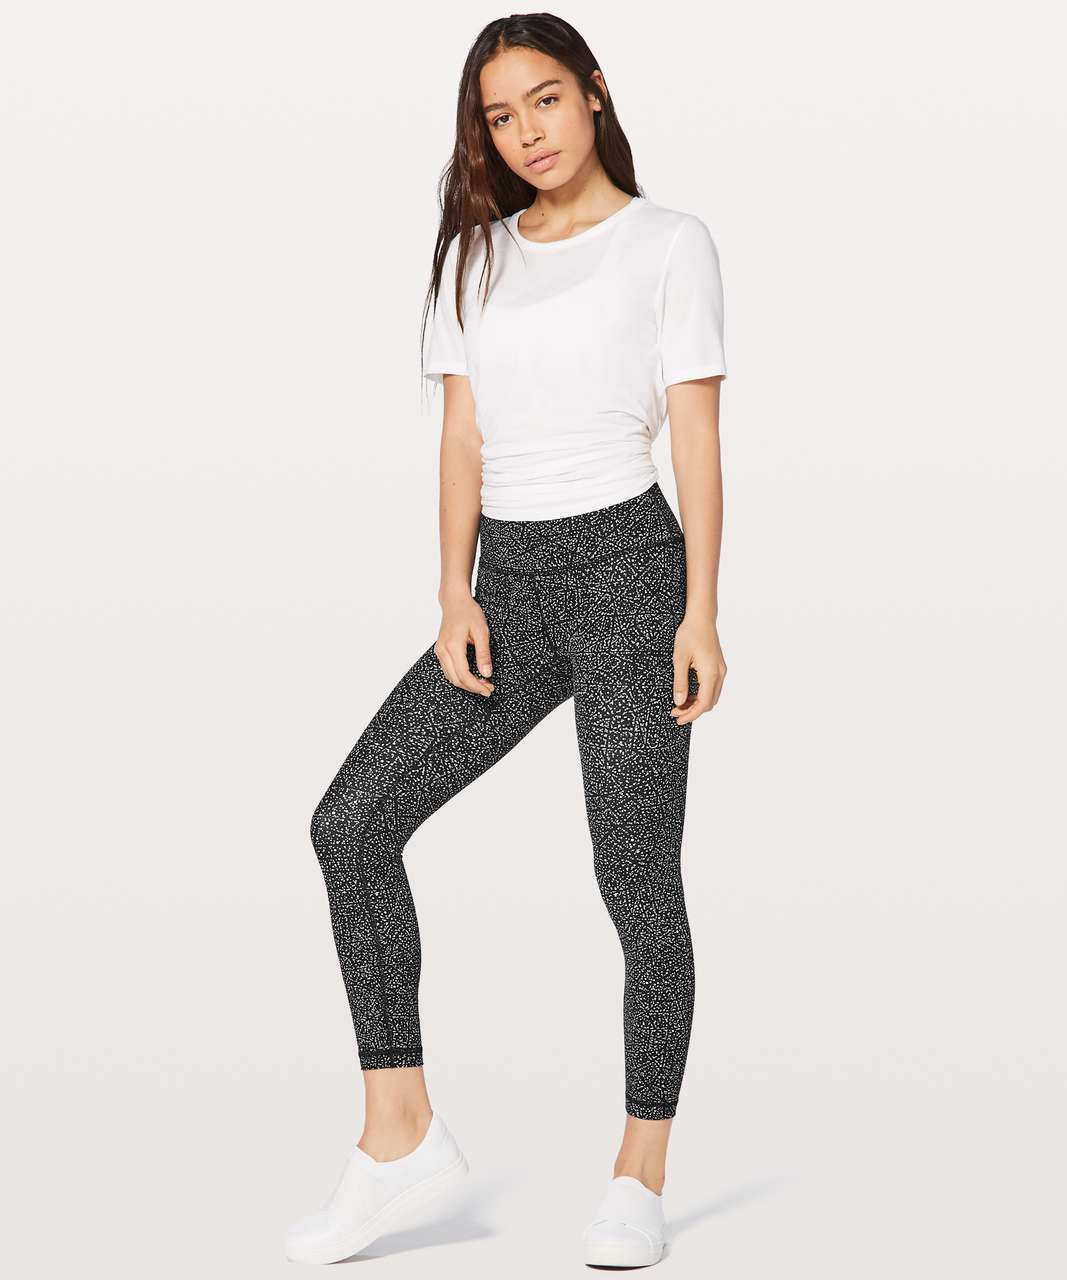 "Lululemon Wunder Under Hi-Rise 7/8 Tight Full-On Luxtreme 25"" - Night View White Black"